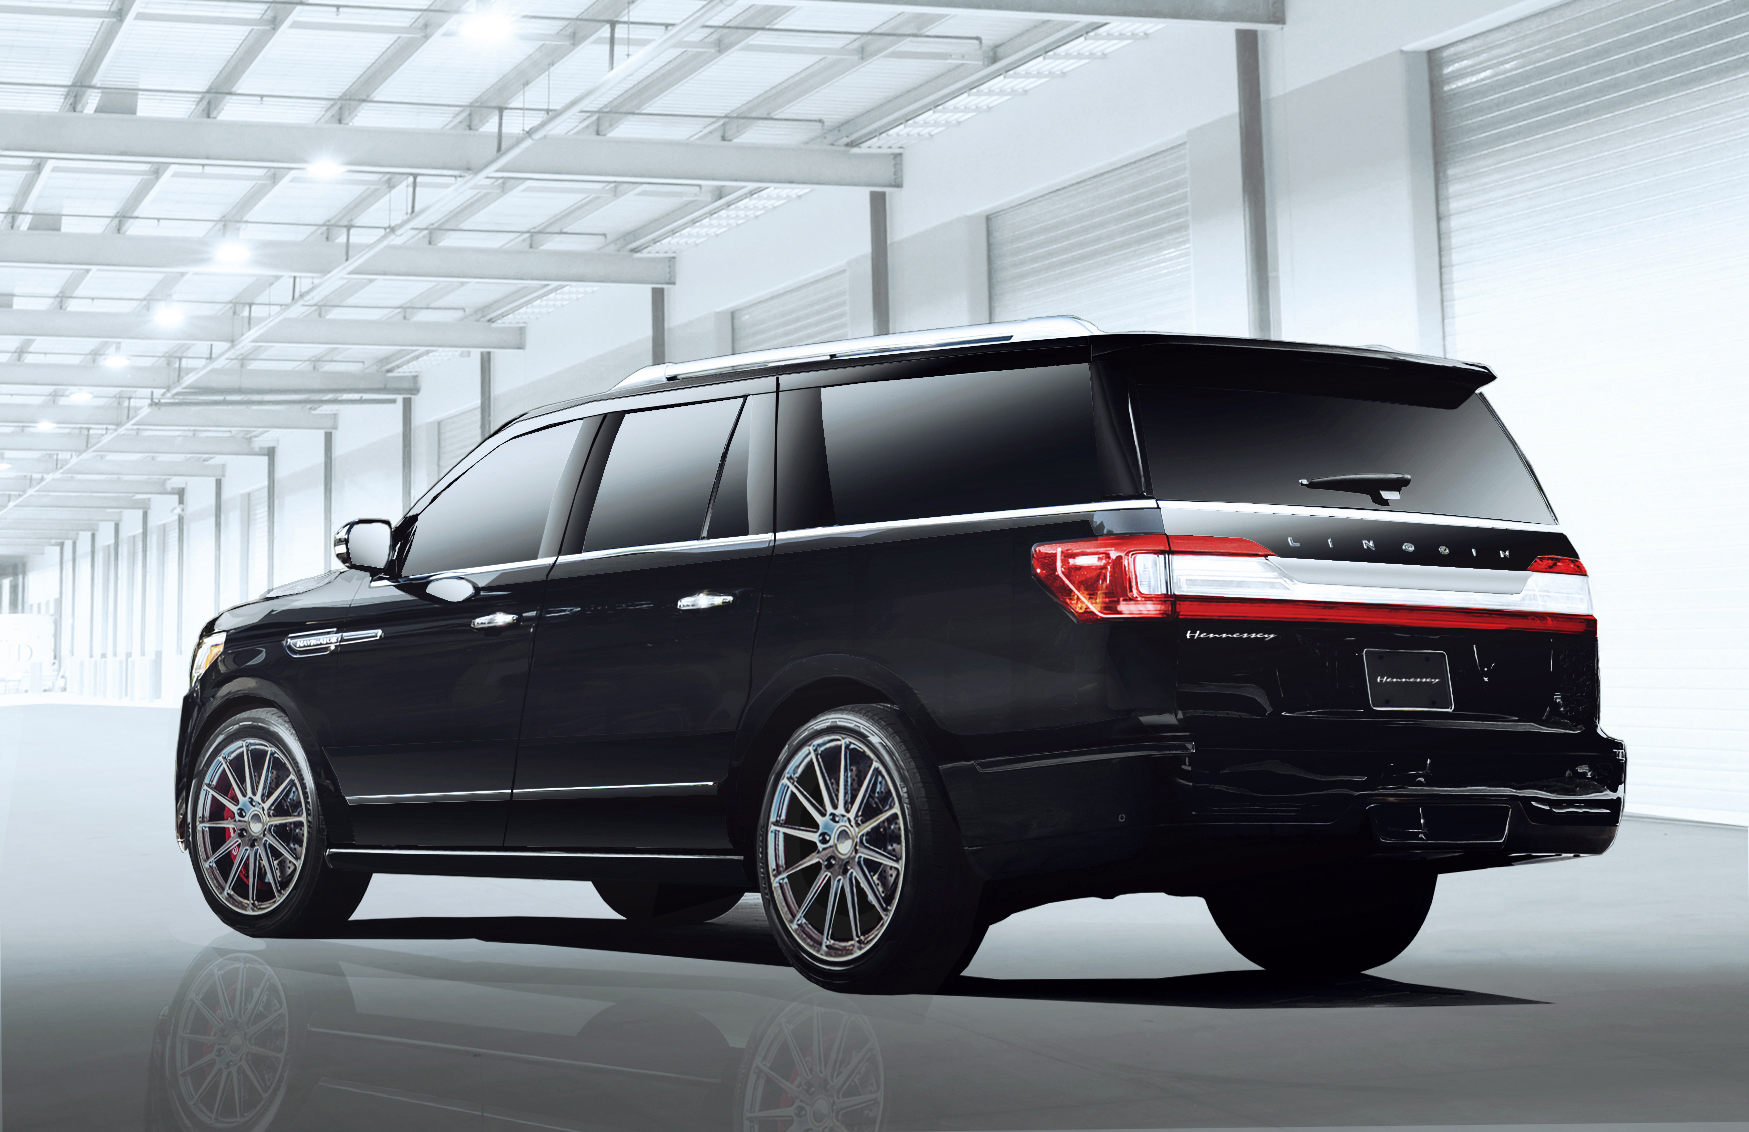 2018 Hennessey Lincoln Navigator Top Speed